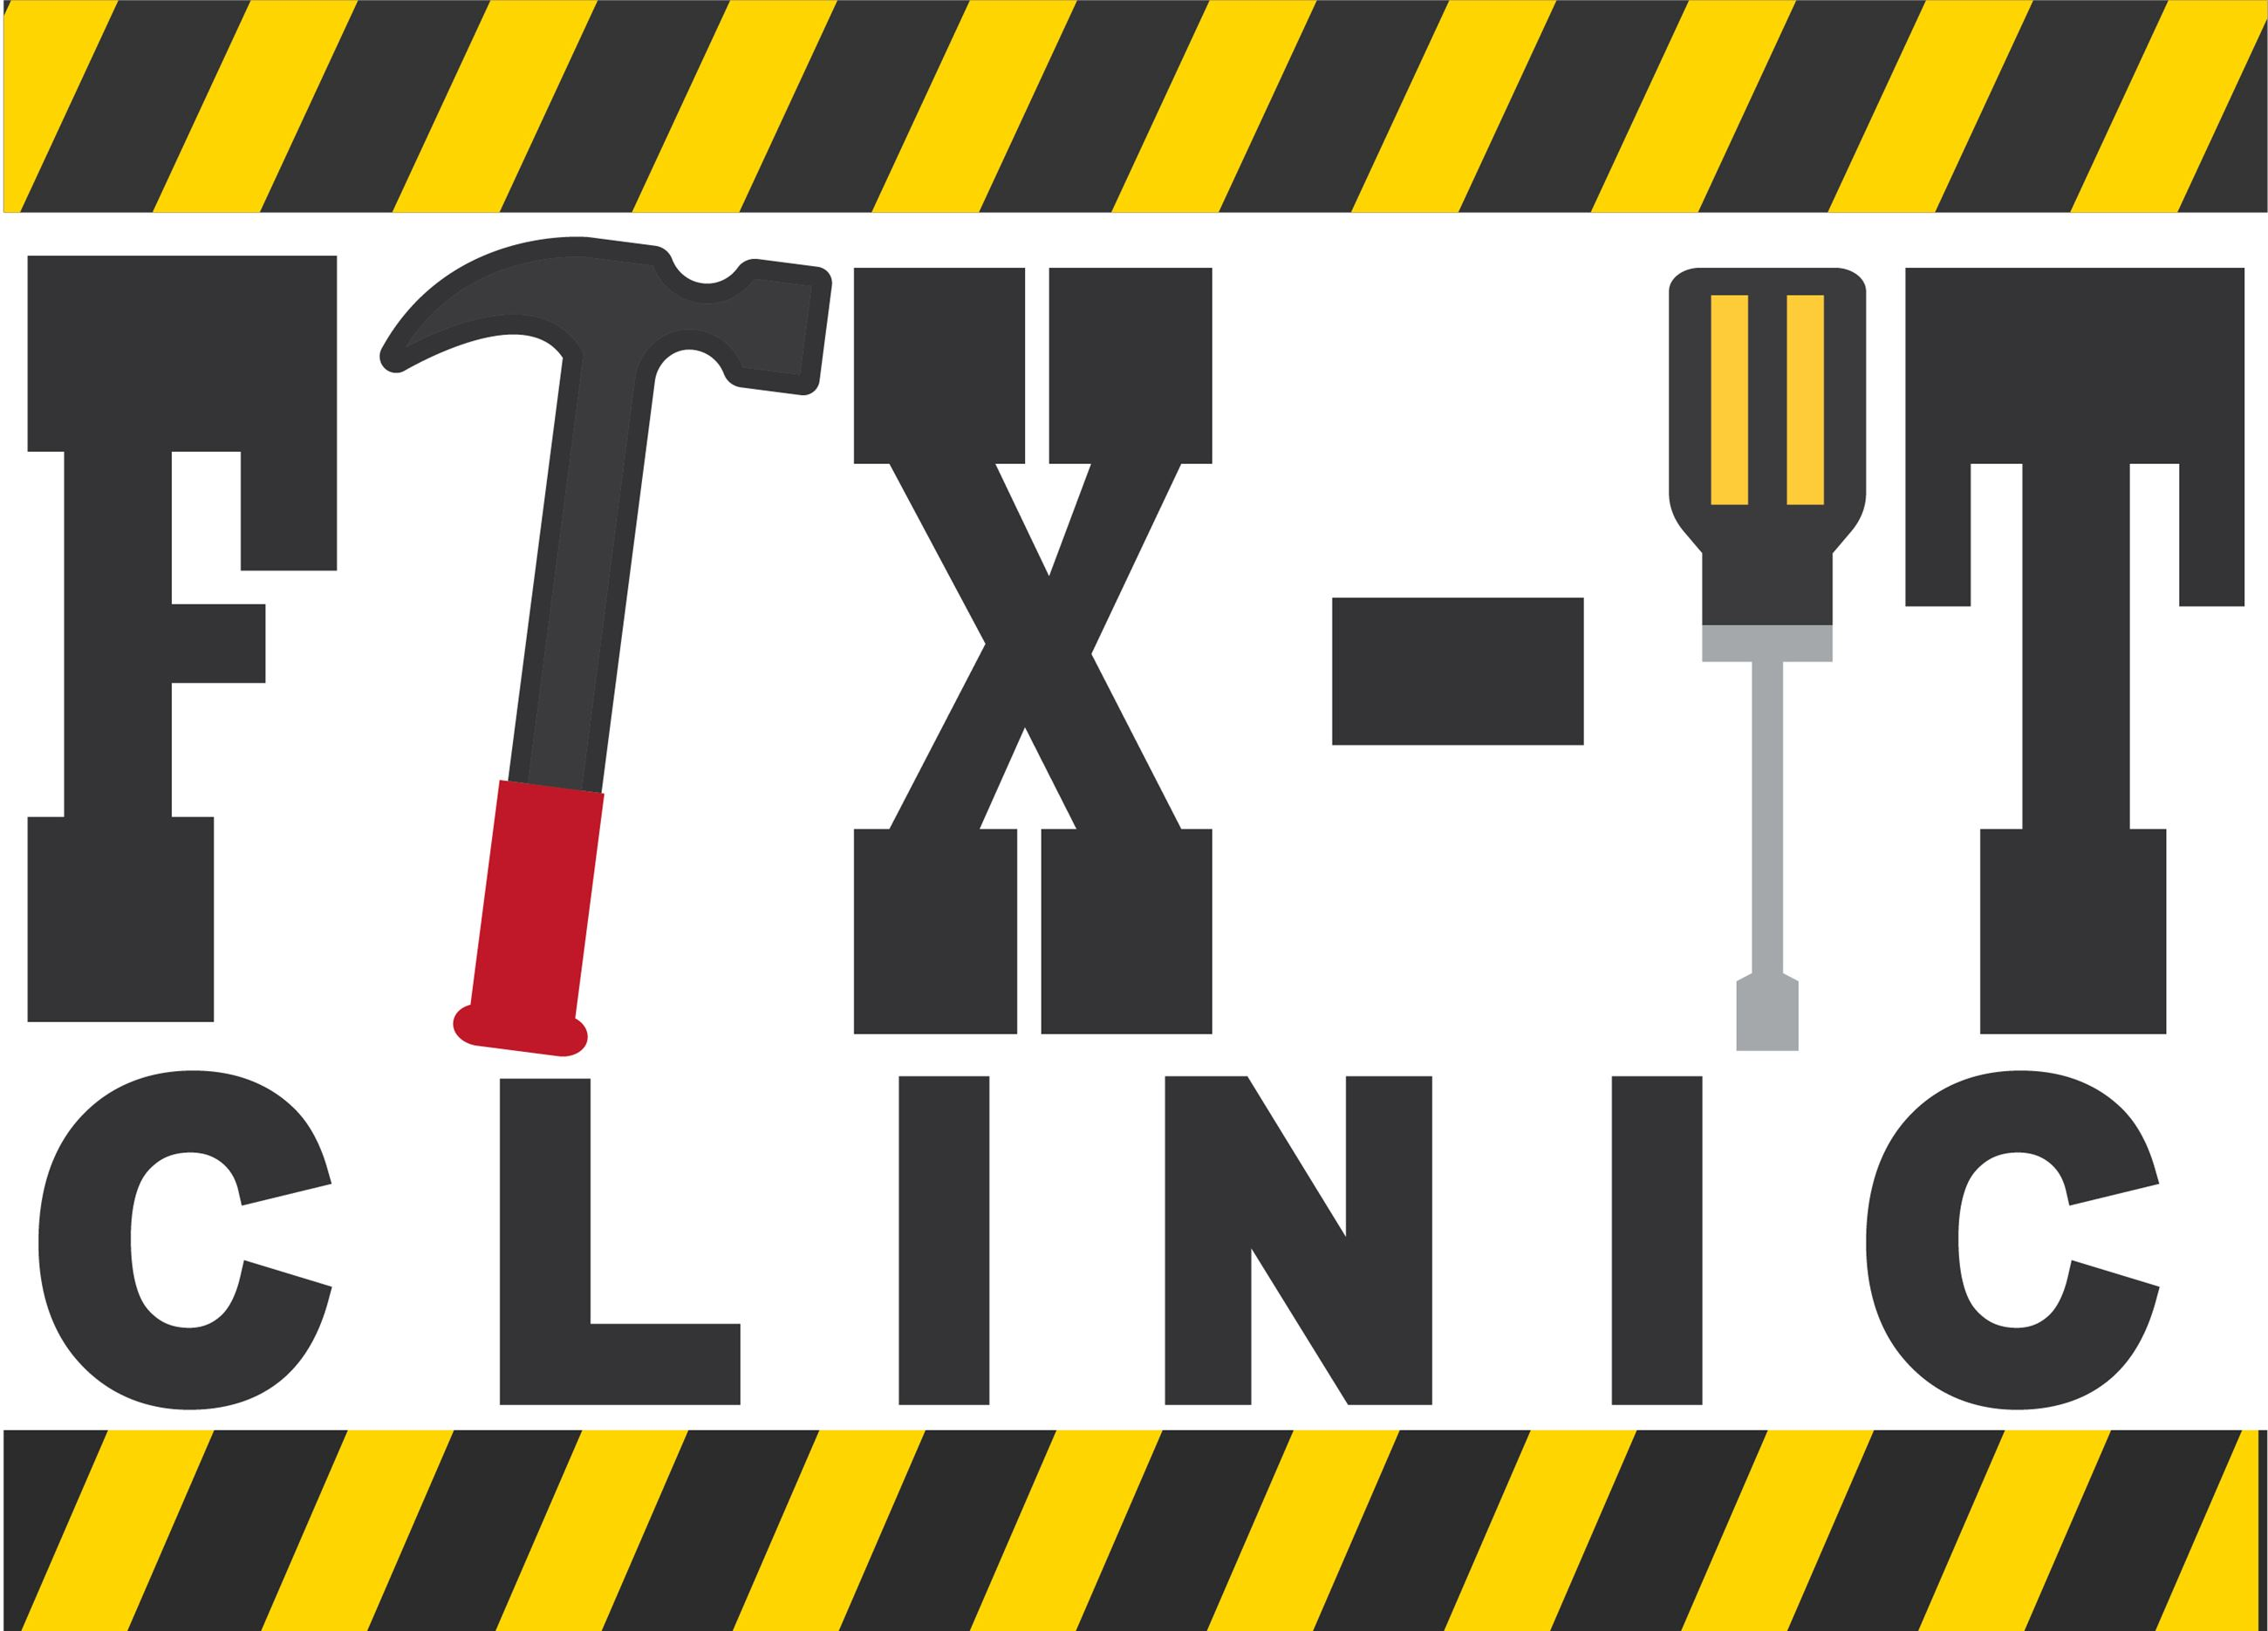 fix it logo-01